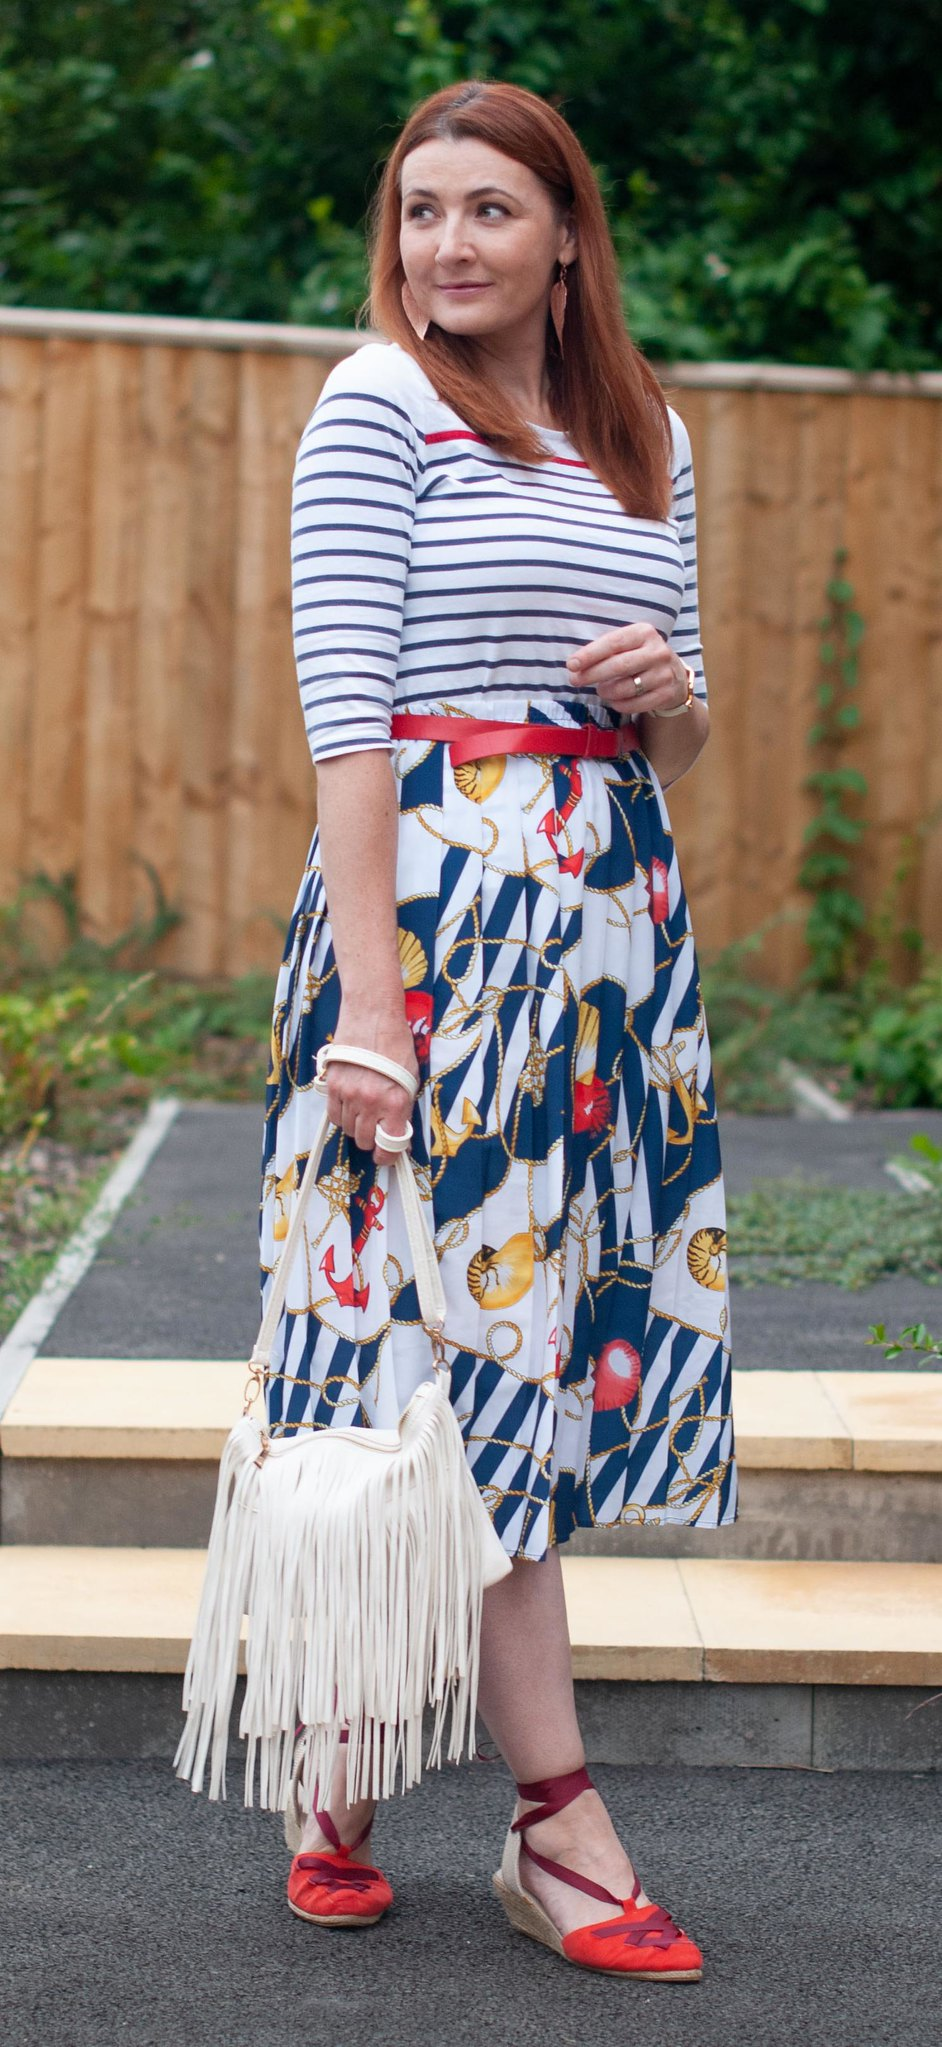 How to Wear a Vintage Nautical Look, Over 40 Style \ stripe Breton top \ vintage nautical print pleated midi skirt \ red espadrilles \ white fringe bag | Not Dressed As Lamb, over 40 fashion